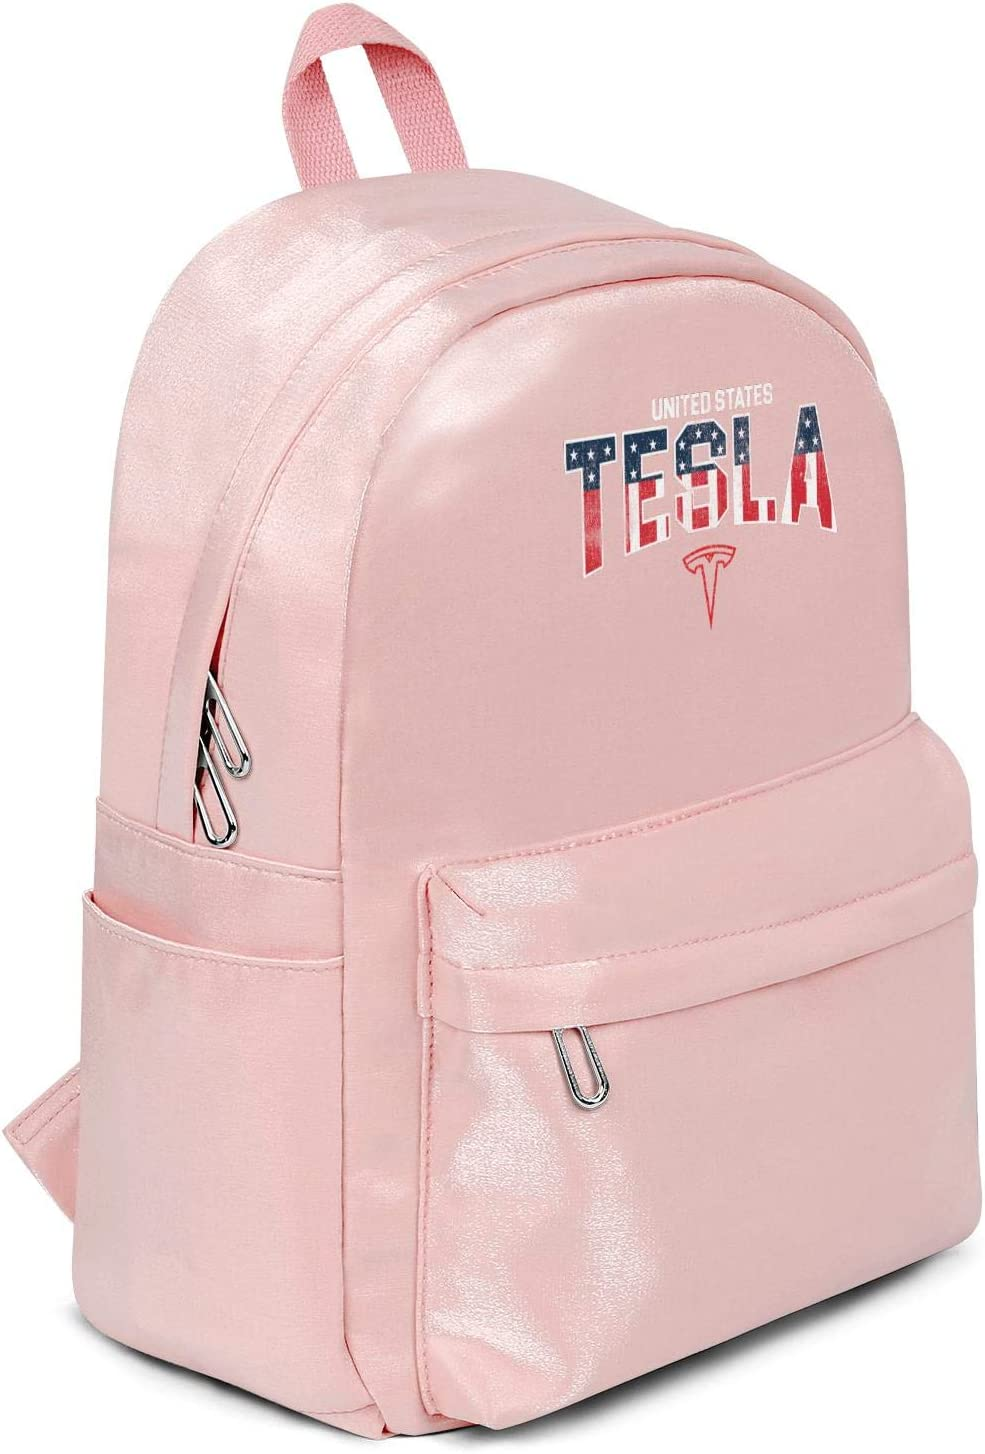 Womens Girl Boys Bag Purse Fashion Nylon Water Resistant 13 Inch Laptop Compartment Backpack Bag Purse Pink Tesla-red-blue-energy-Distressed-Linear